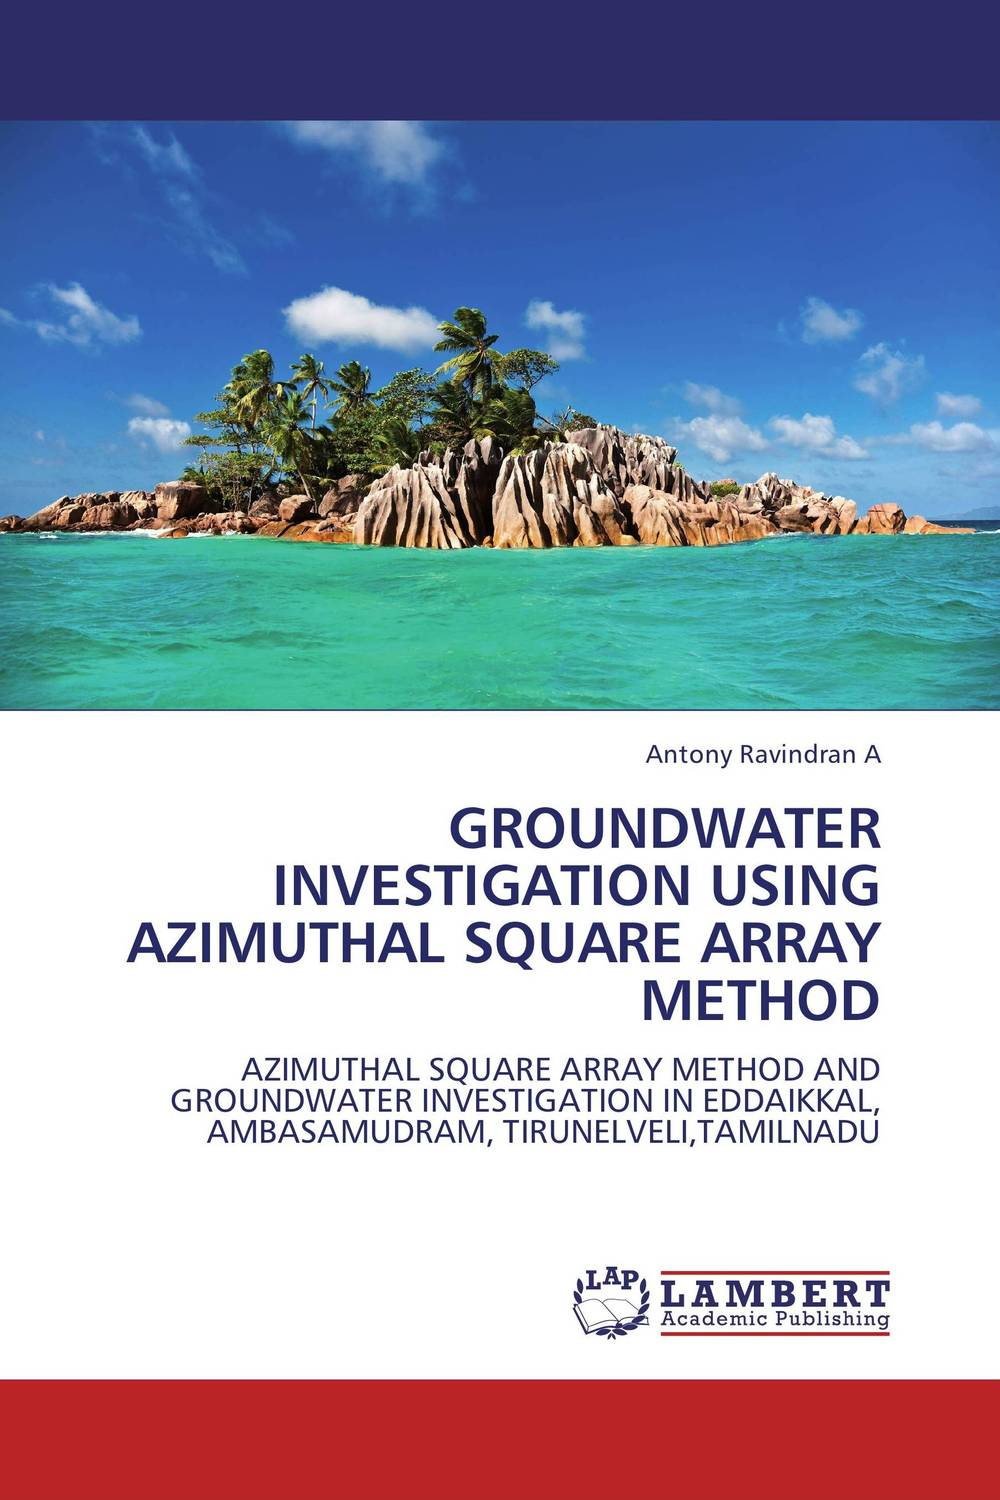 GROUNDWATER INVESTIGATION USING AZIMUTHAL SQUARE ARRAY METHOD the conference of the birds a study of farid ud din attars poem using jali diwani calligraphy